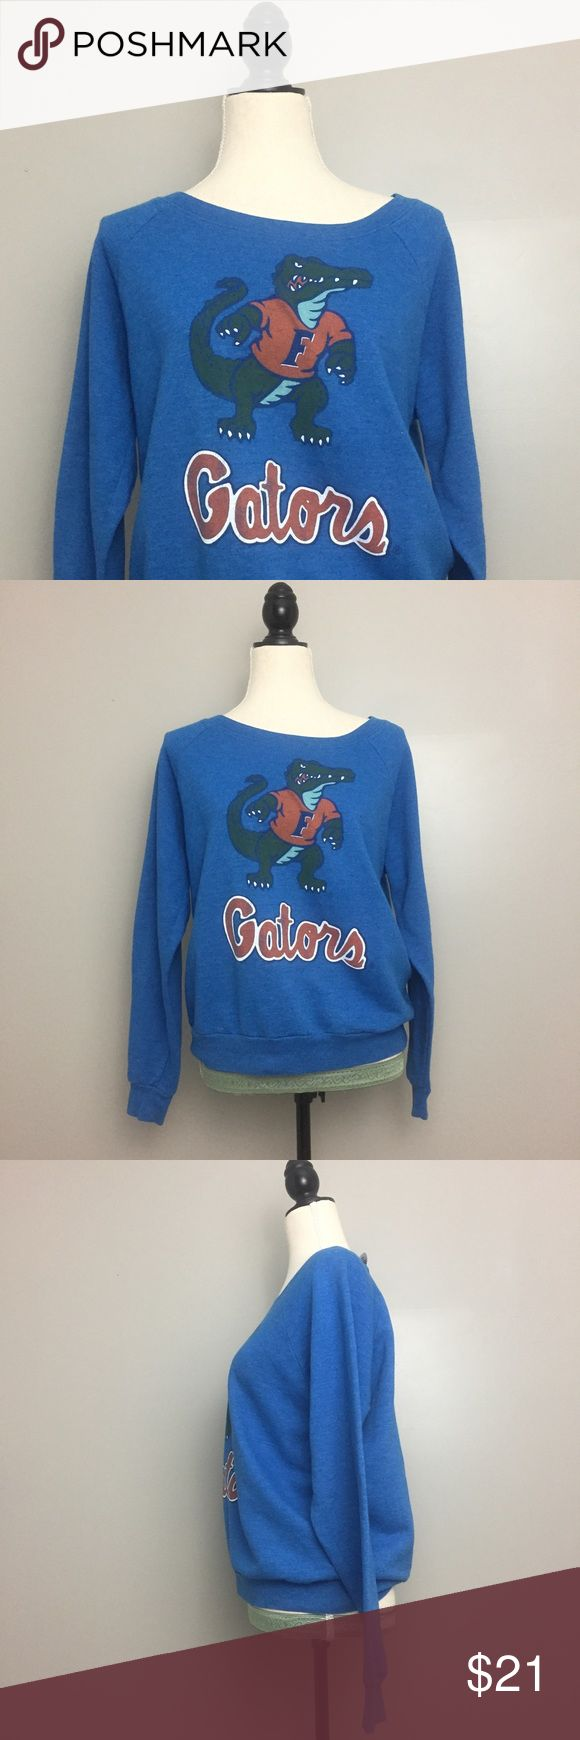 Recycled Karma Blue Florida Gator  Logo Sweatshirt Recycled Karma. Size Medium. Blue. Florida Gaters logo. Vintage style. Collegiate Sweatshirt. Pull over. Opaque.  Pull on closure. See photographs for measurements, shown on size Medium dress form. Excellent Preowned Condition. Recycled Karma Tops Sweatshirts & Hoodies